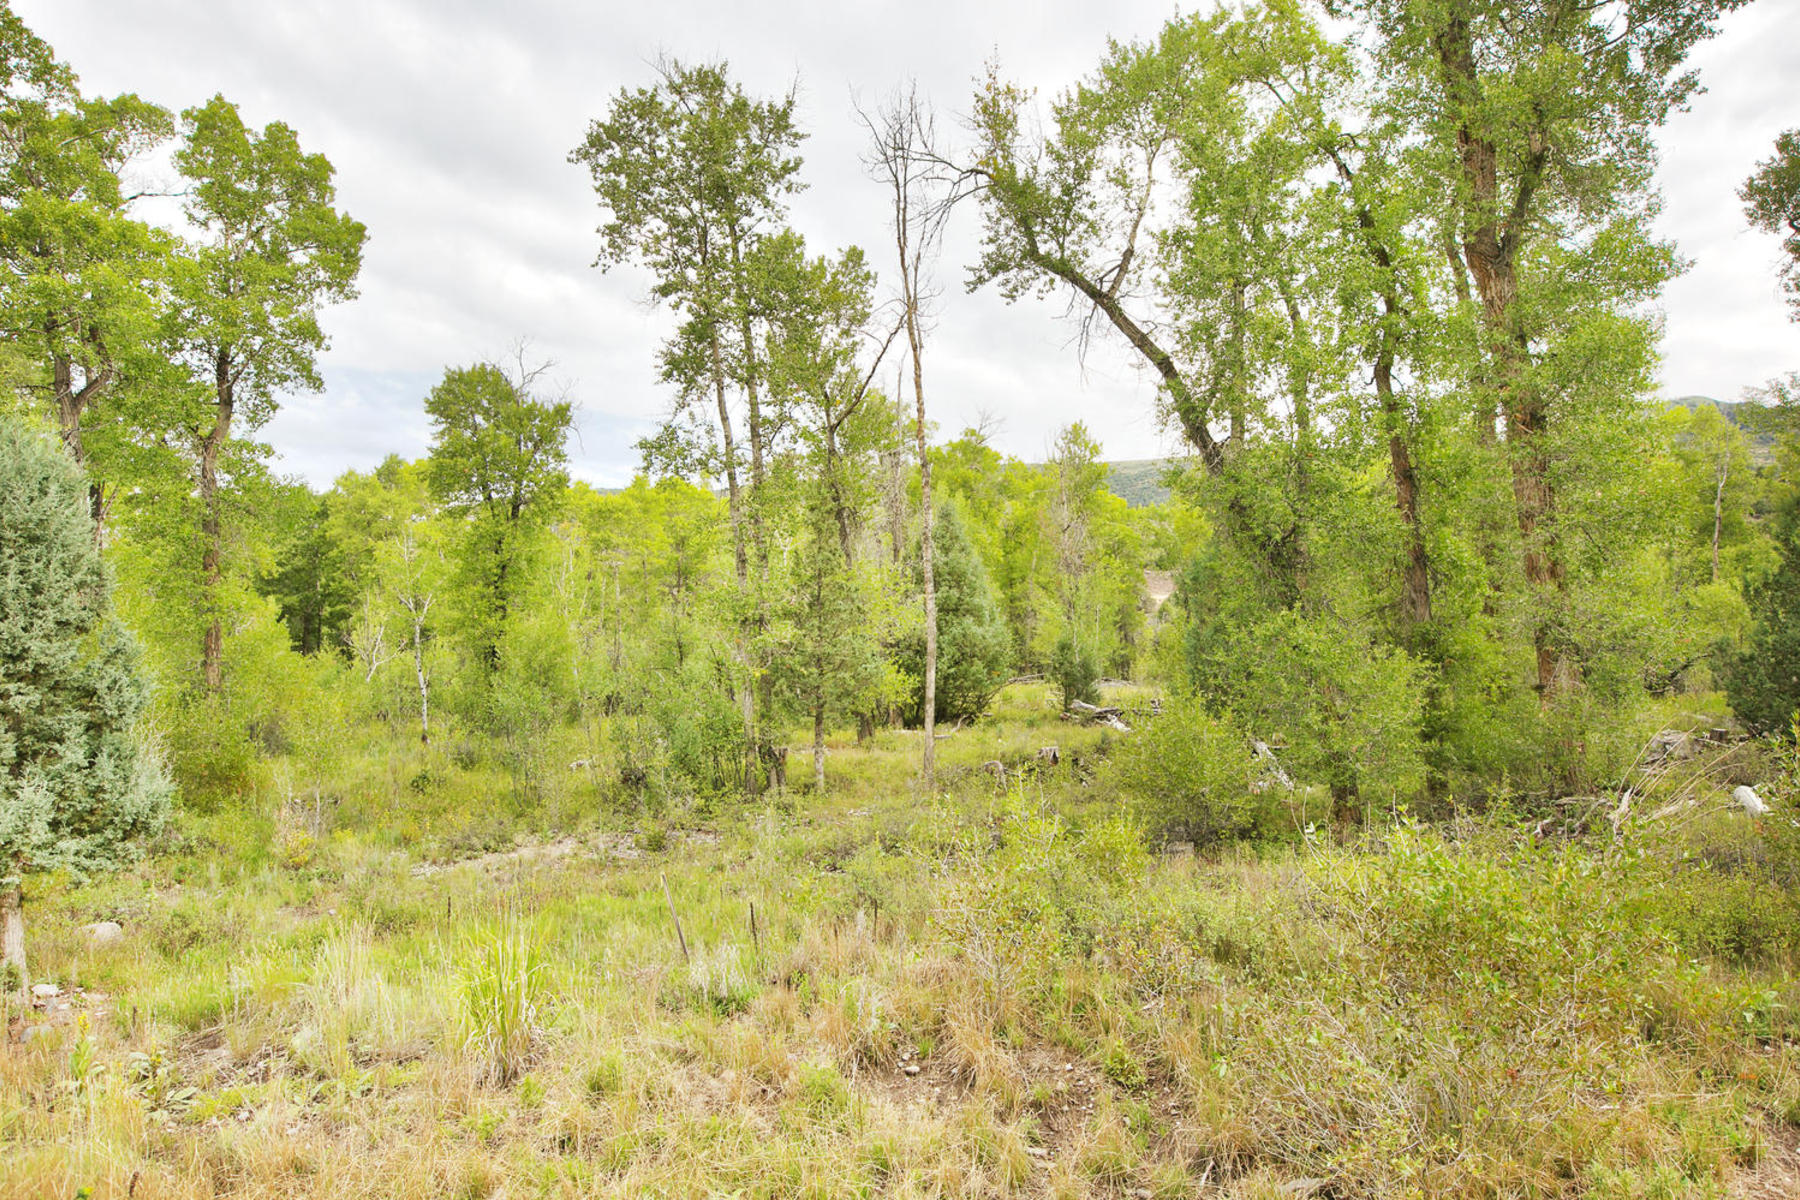 Property For Sale at Delightful wooded 5 acre parcel on year round creed w/year round access!